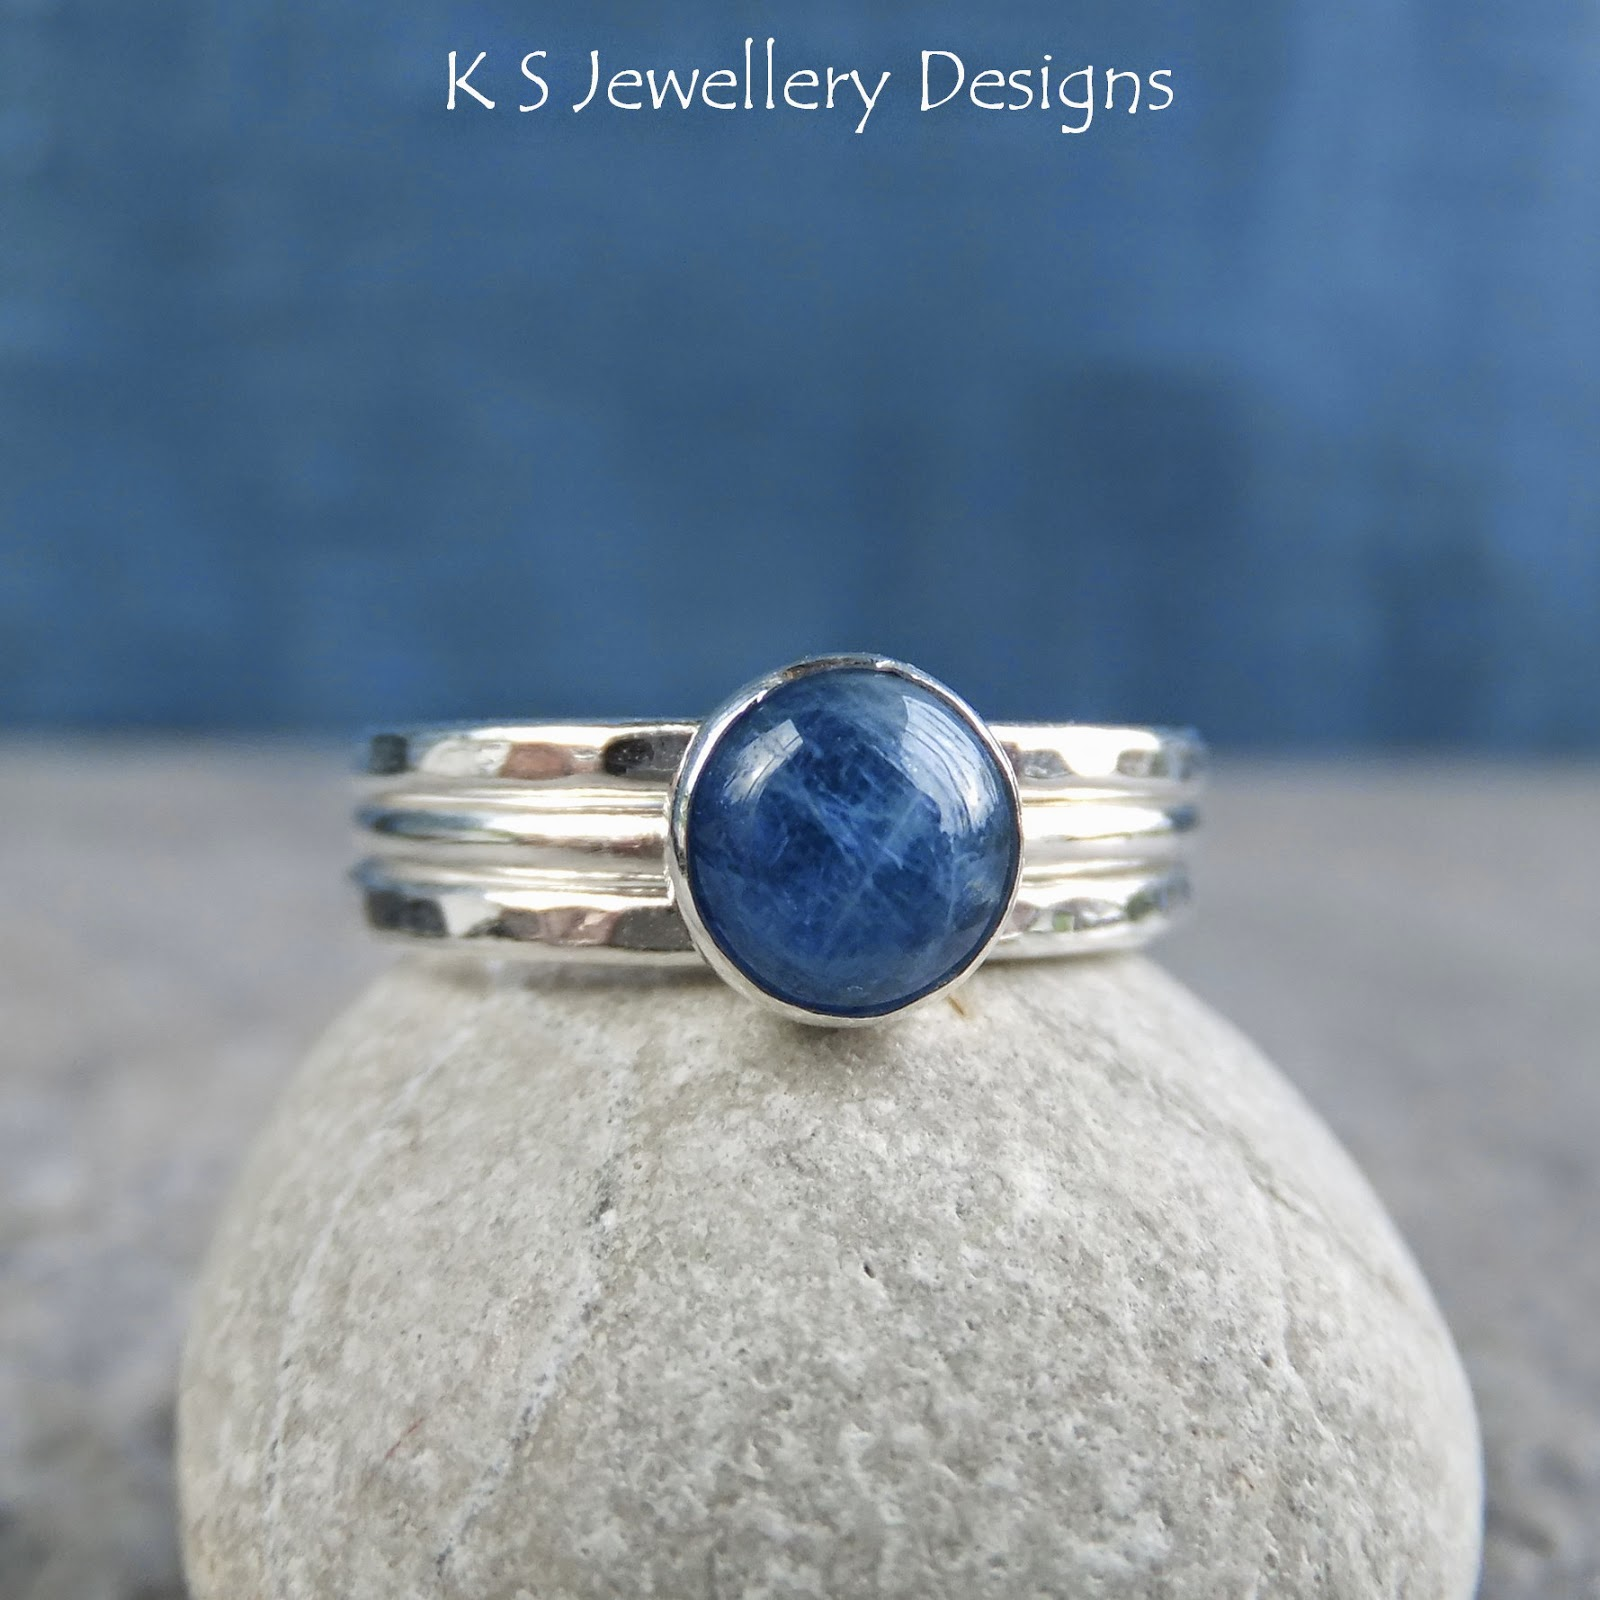 http://ksjewellerydesigns.co.uk/ourshop/prod_3110201-Kyanite-Sterling-Silver-Stacking-Gemstone-Ring-Trio-MADE-TO-ORDER.html